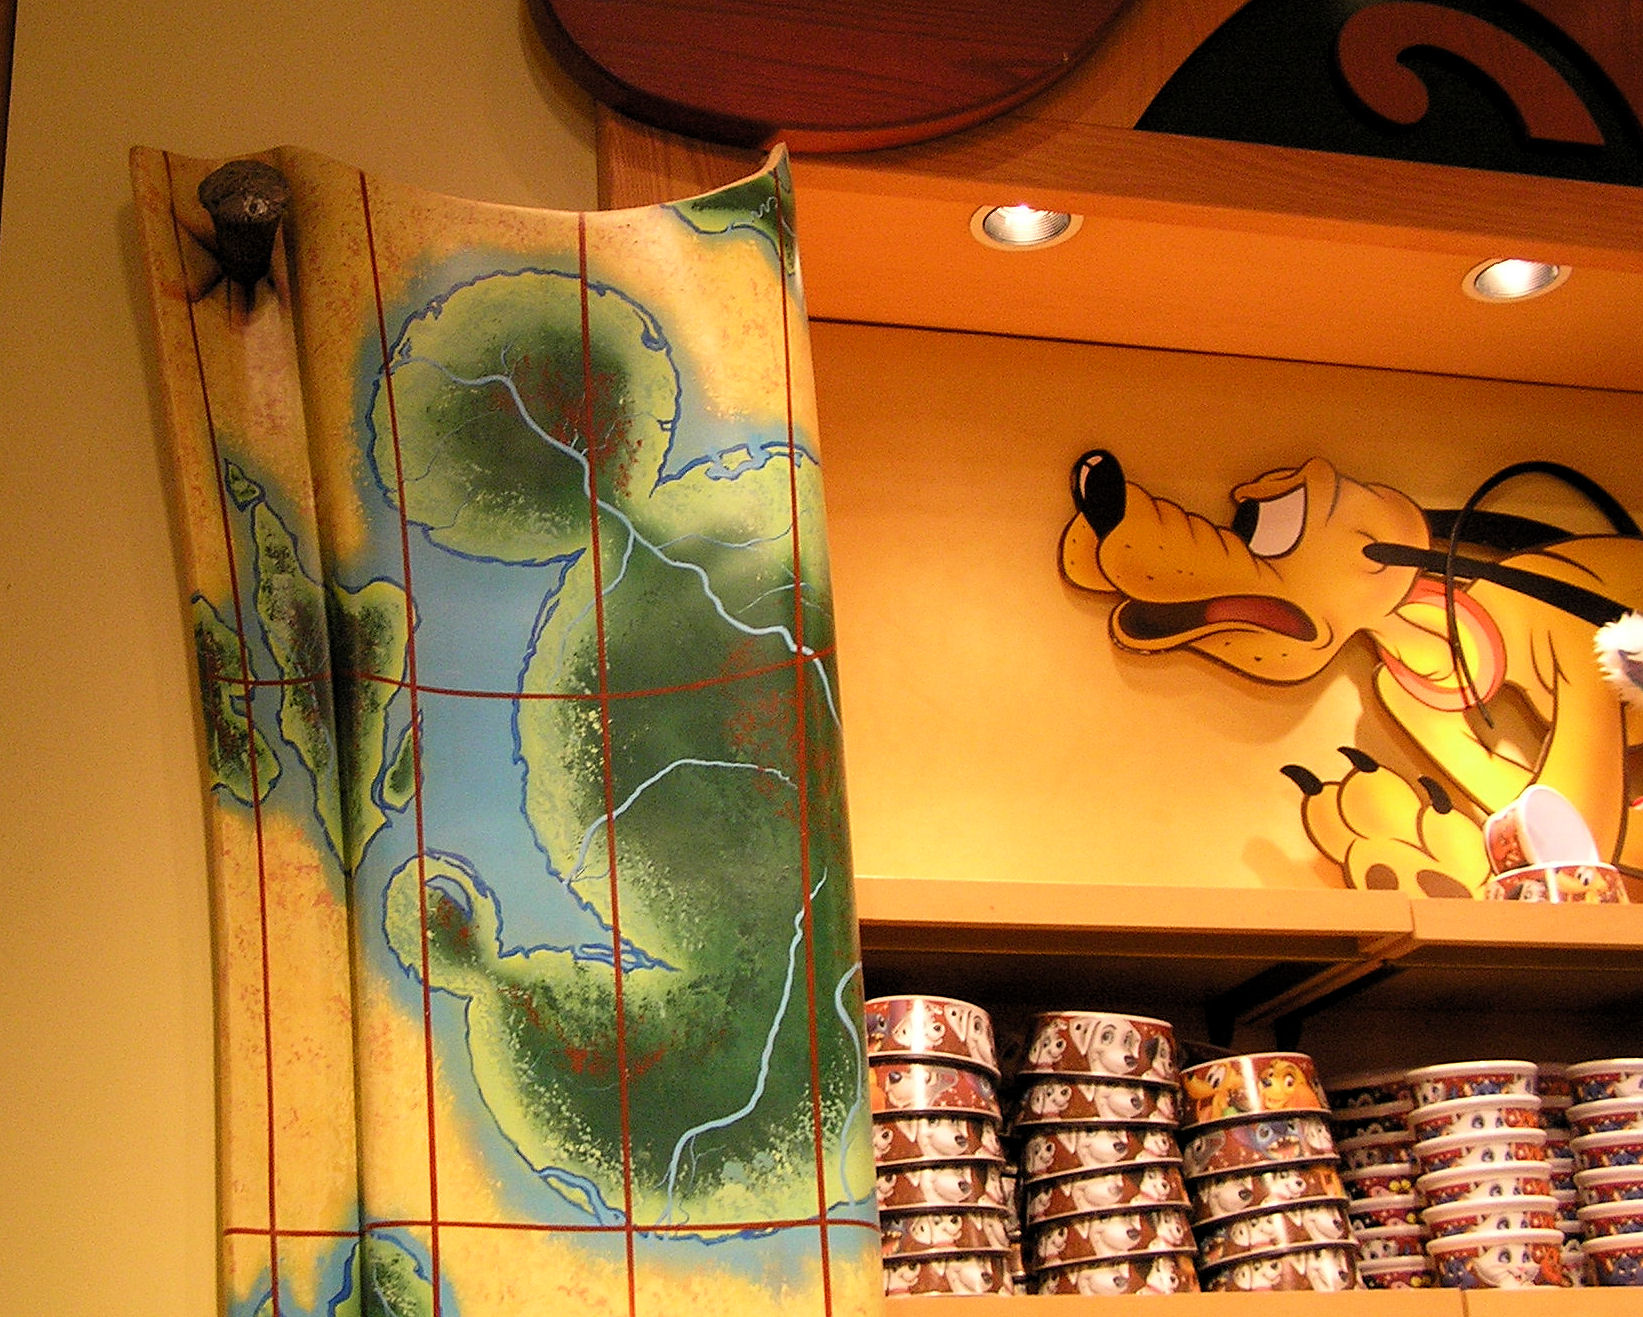 The World of Disney Store at Downtown Disney at Disney World.